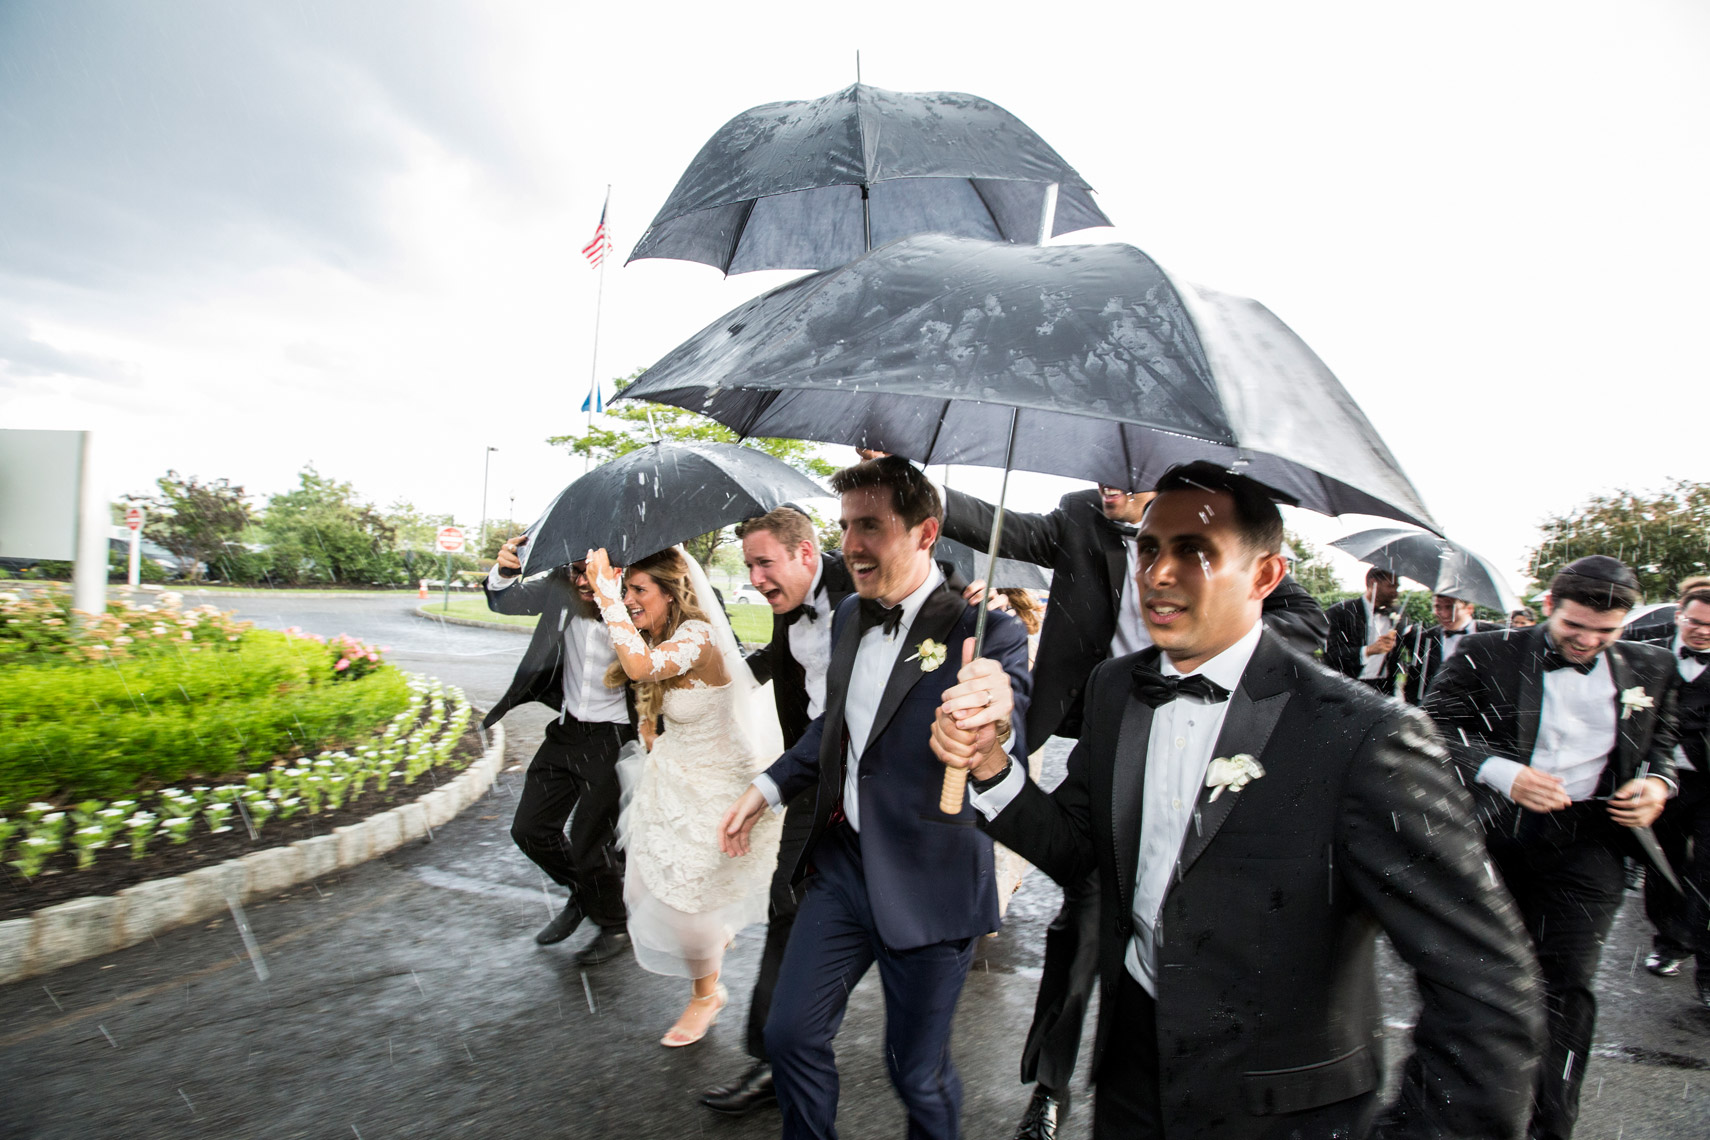 bride-groom-running-umbrellas-rain-wedding-Maritme-Parc-sarma-and-co